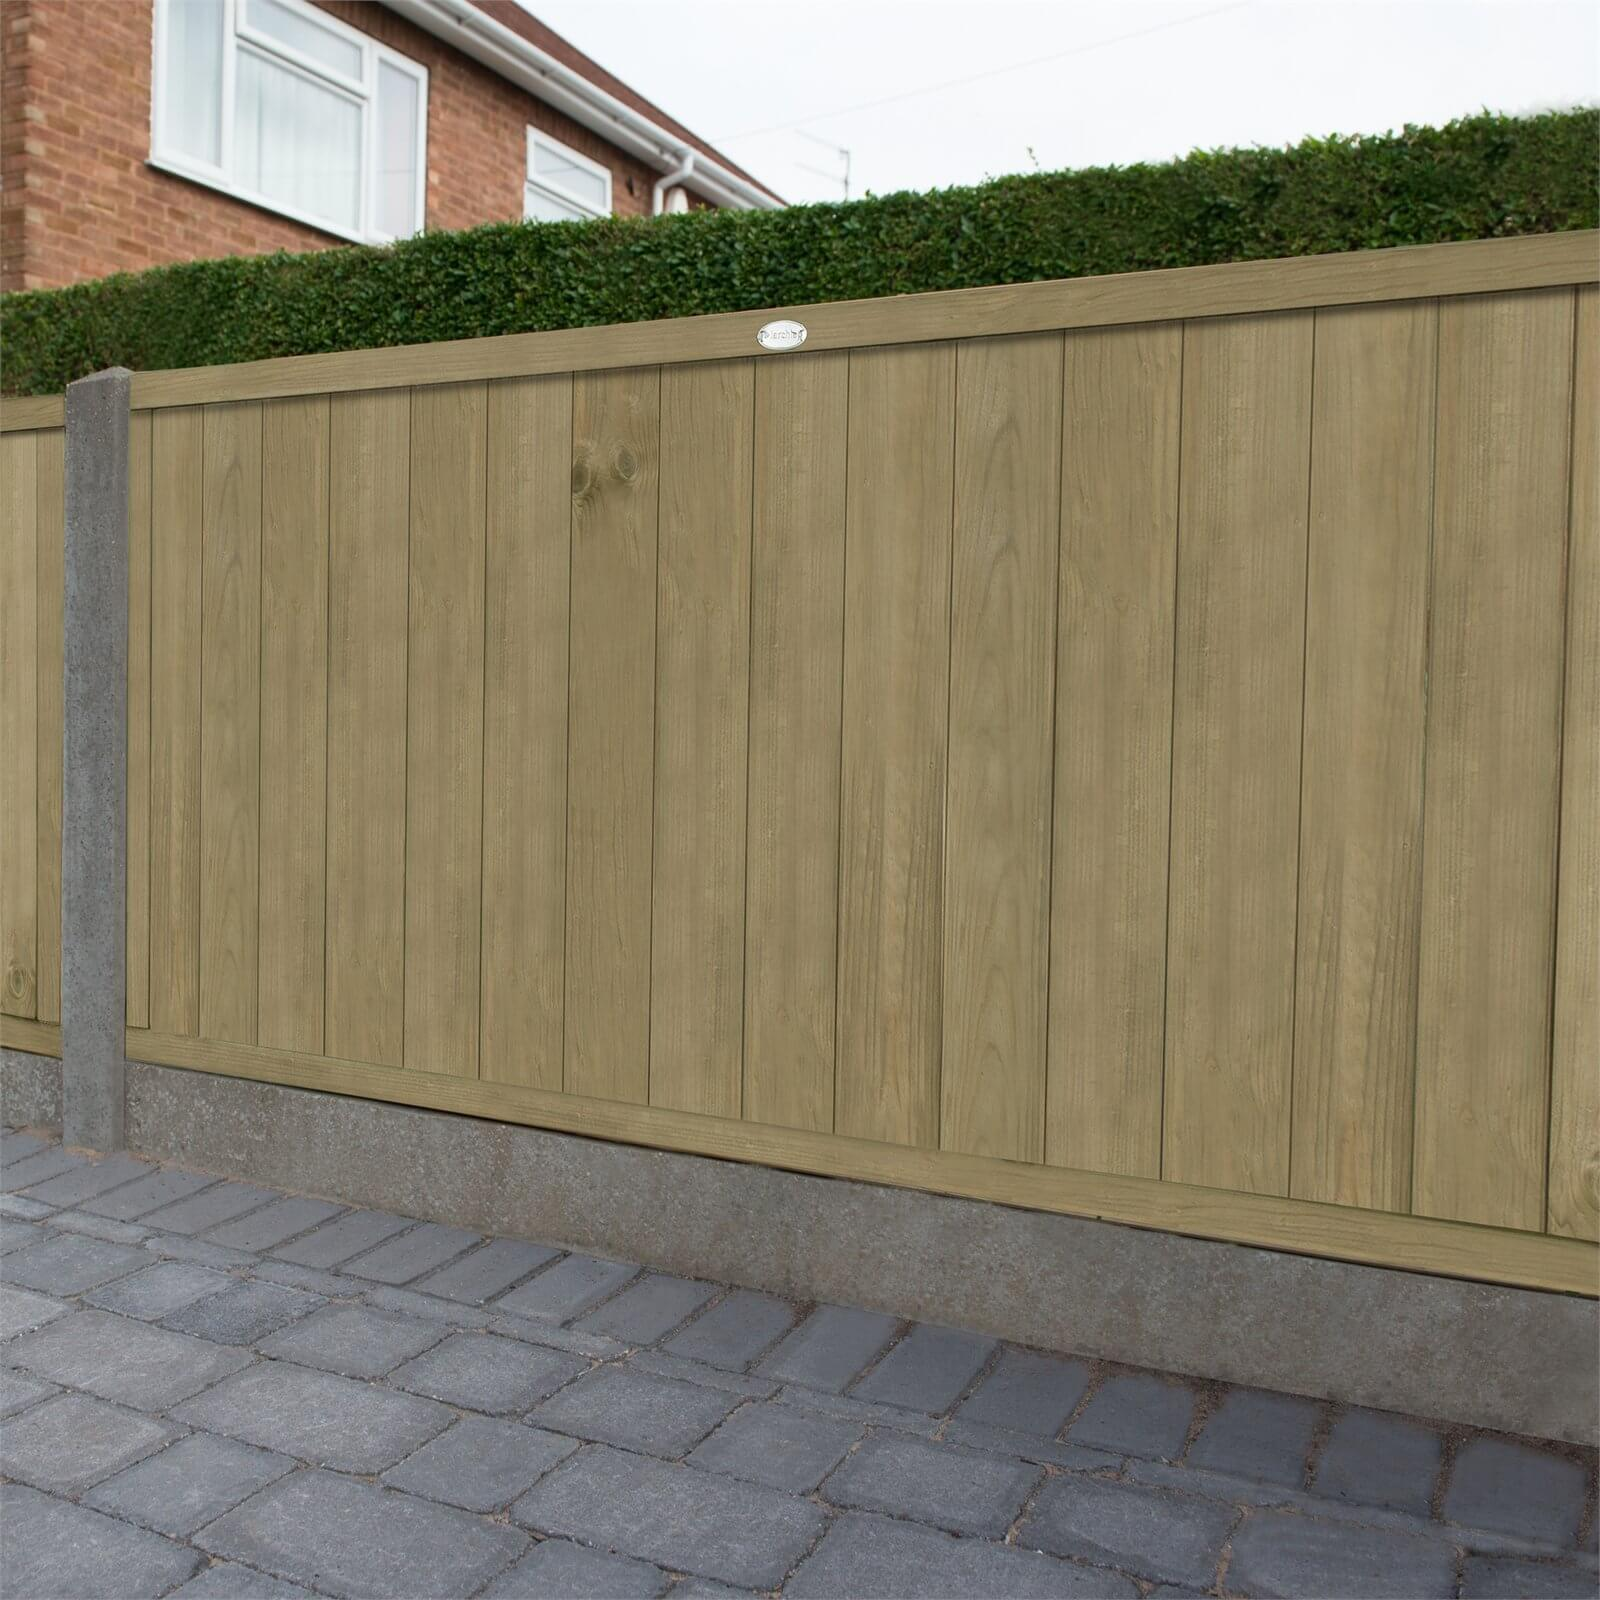 Forest Vertical Tongue & Groove Fence Panel - 4ft - Pack of 4